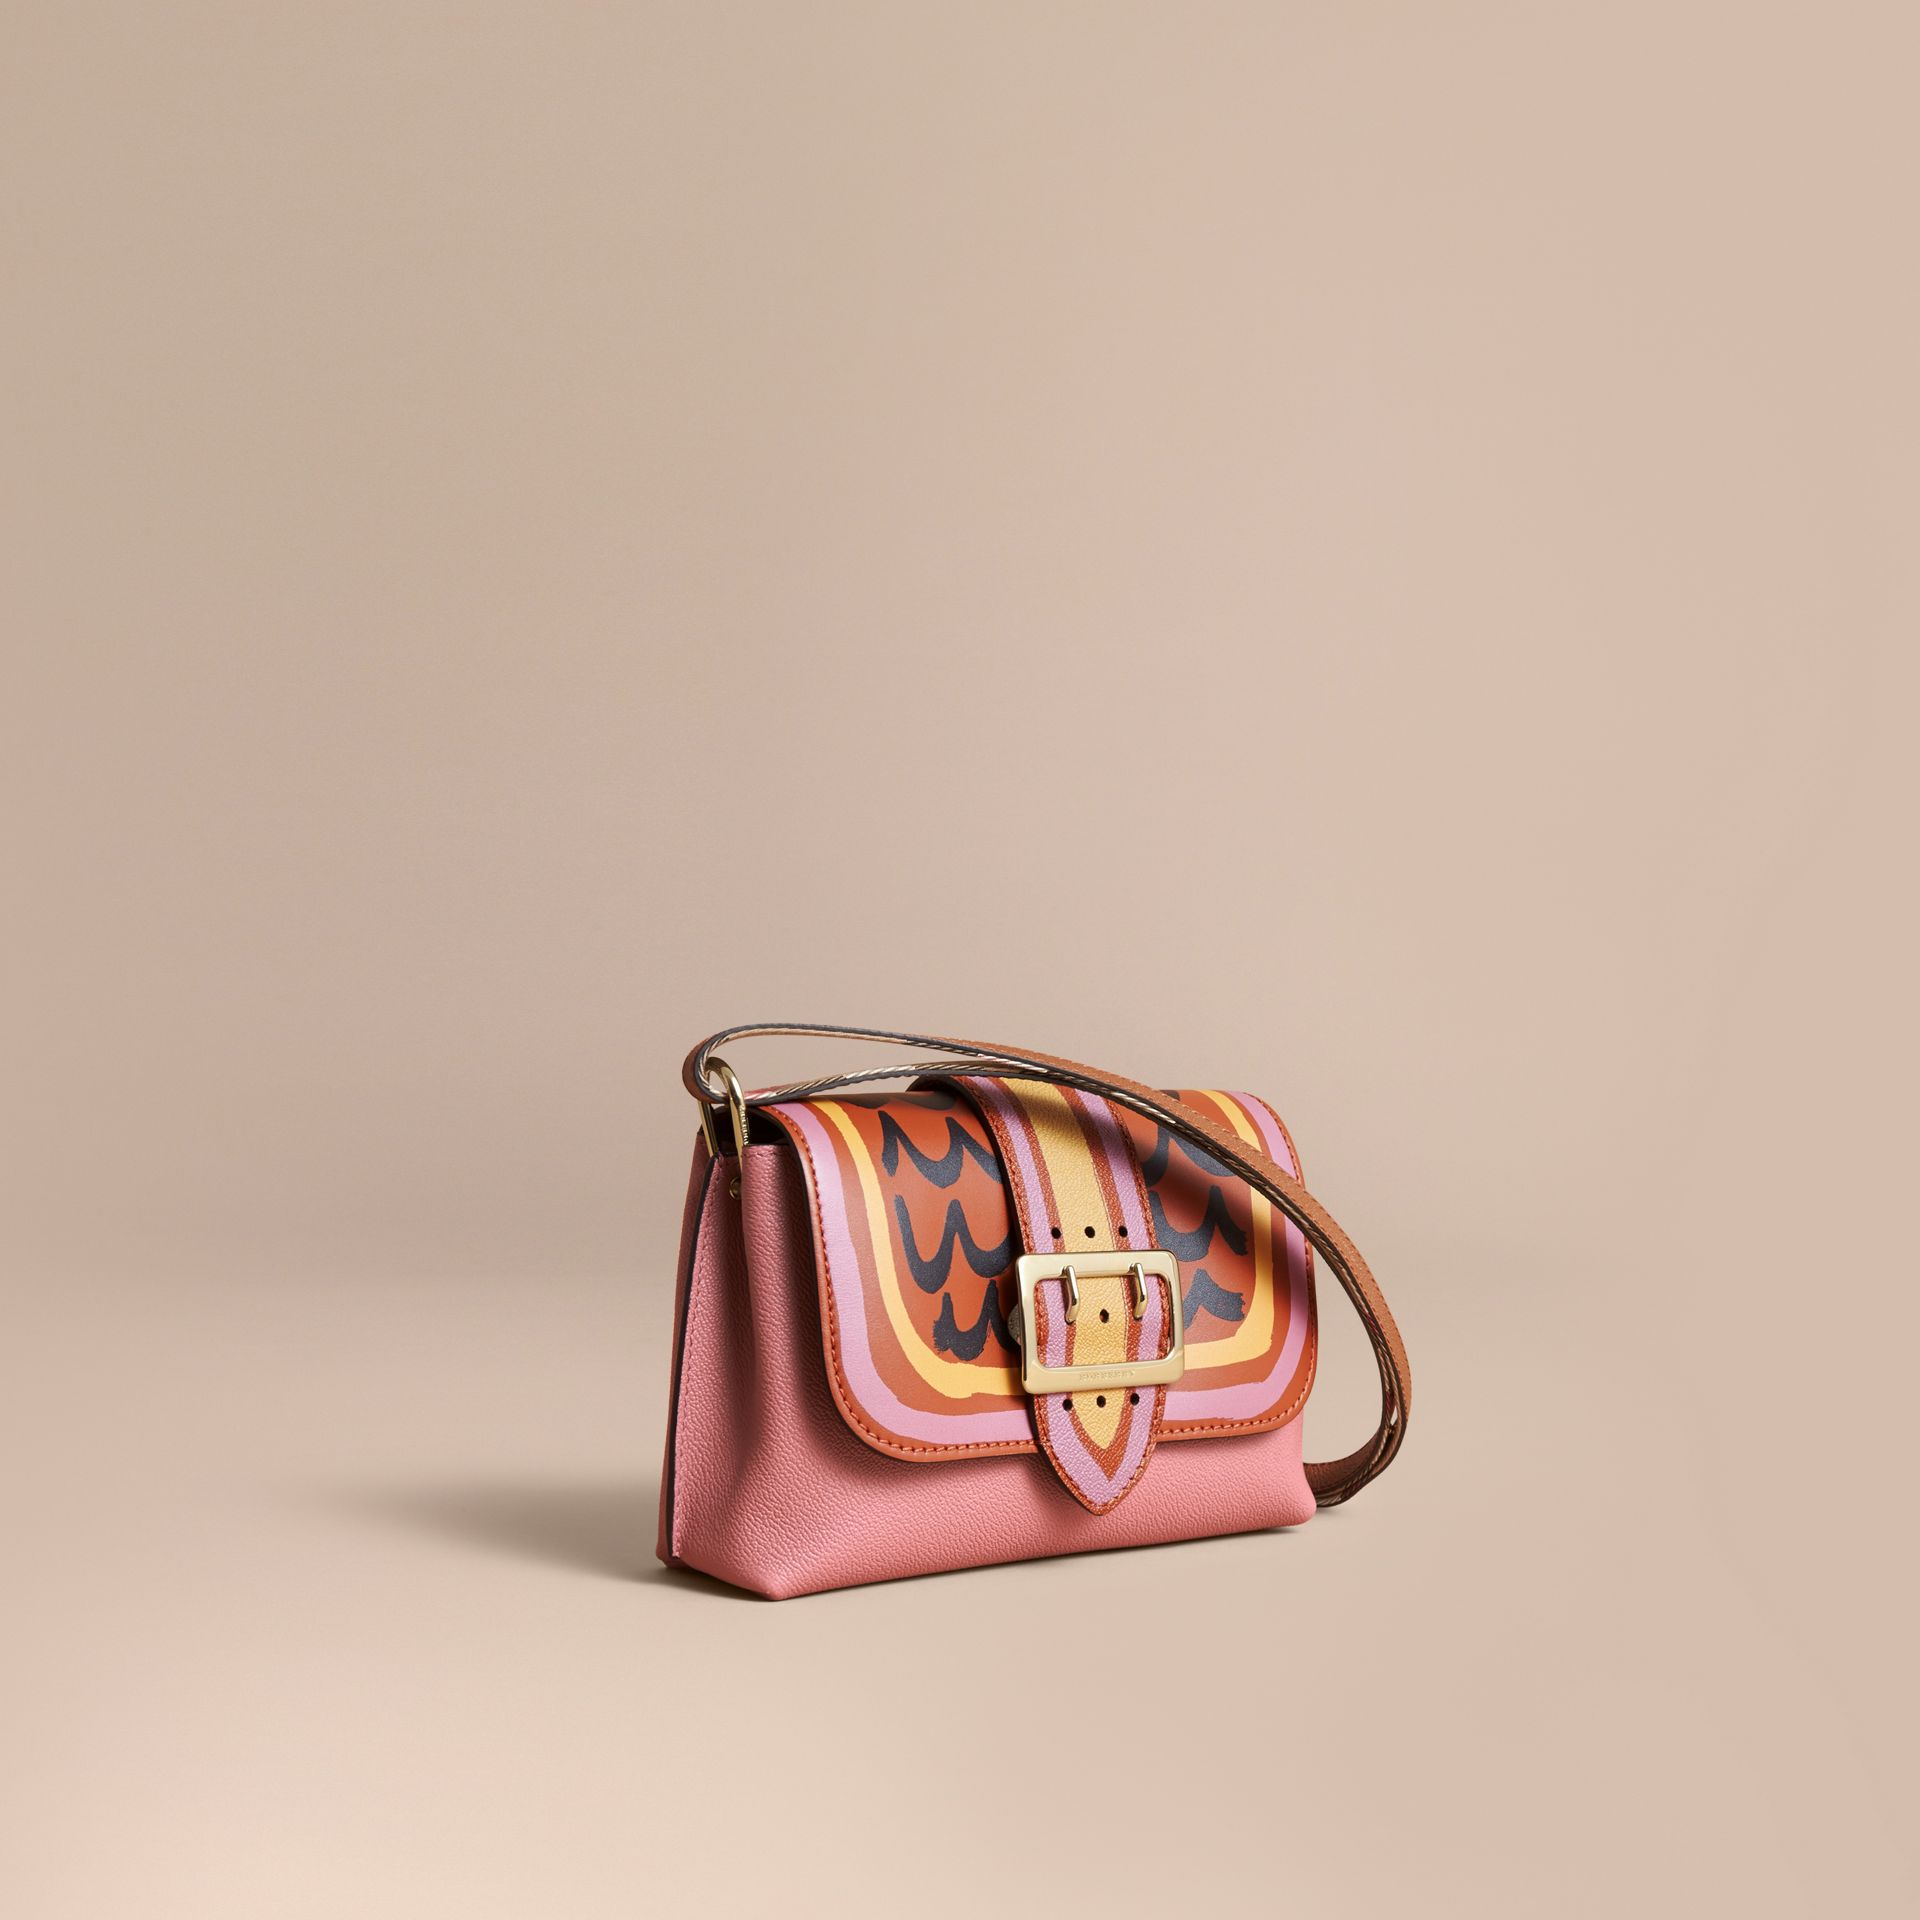 The Buckle Crossbody Bag in Trompe L'oeil Leather Dusty Pink/bright Toffee - gallery image 1